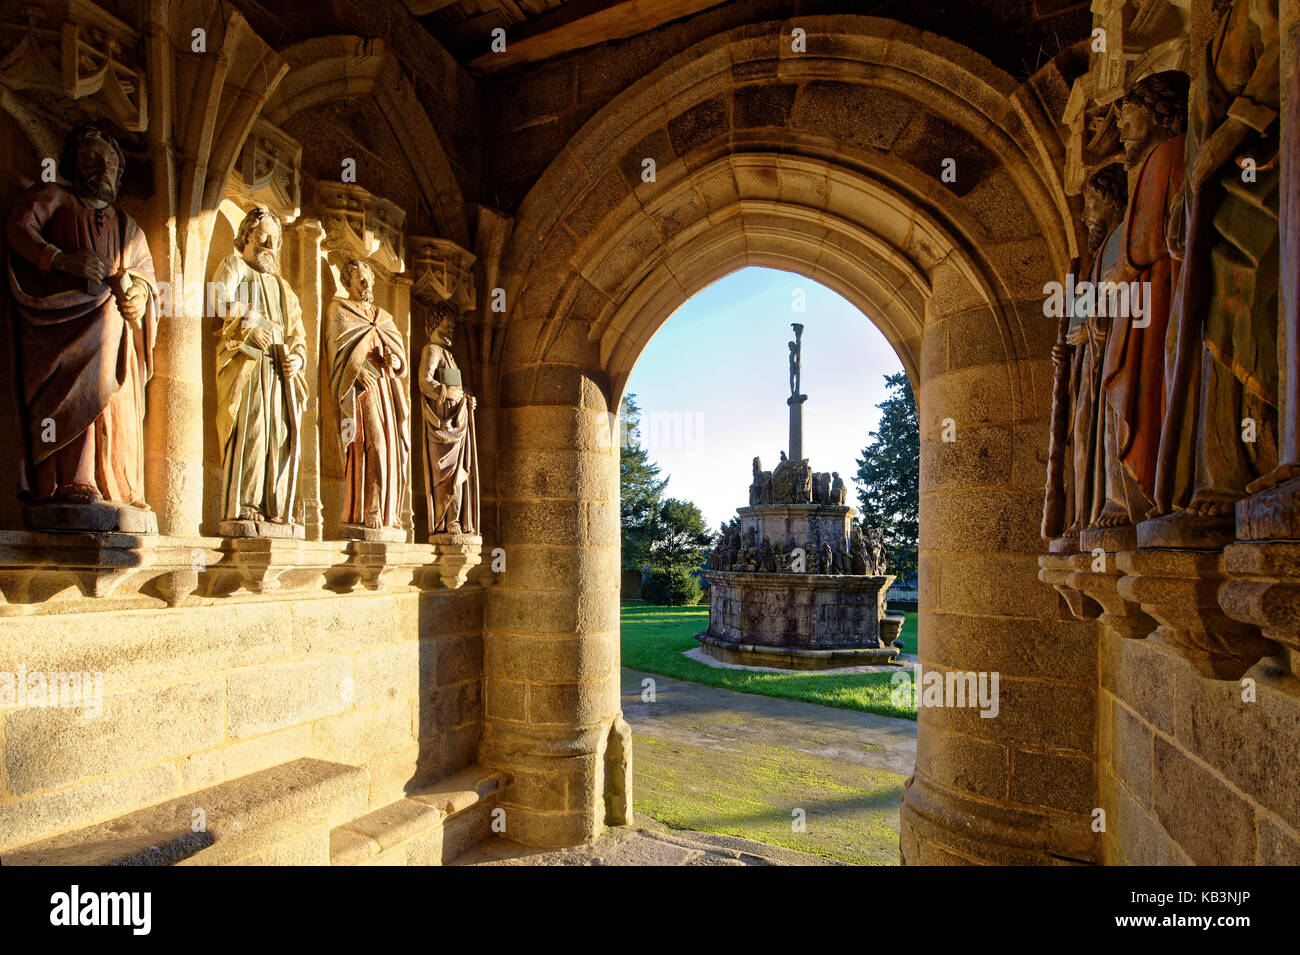 France, Cotes d'Armor, Kergrist Moelan, parochial enclosure, polychrome statues of the apostles under the porch - Stock Image